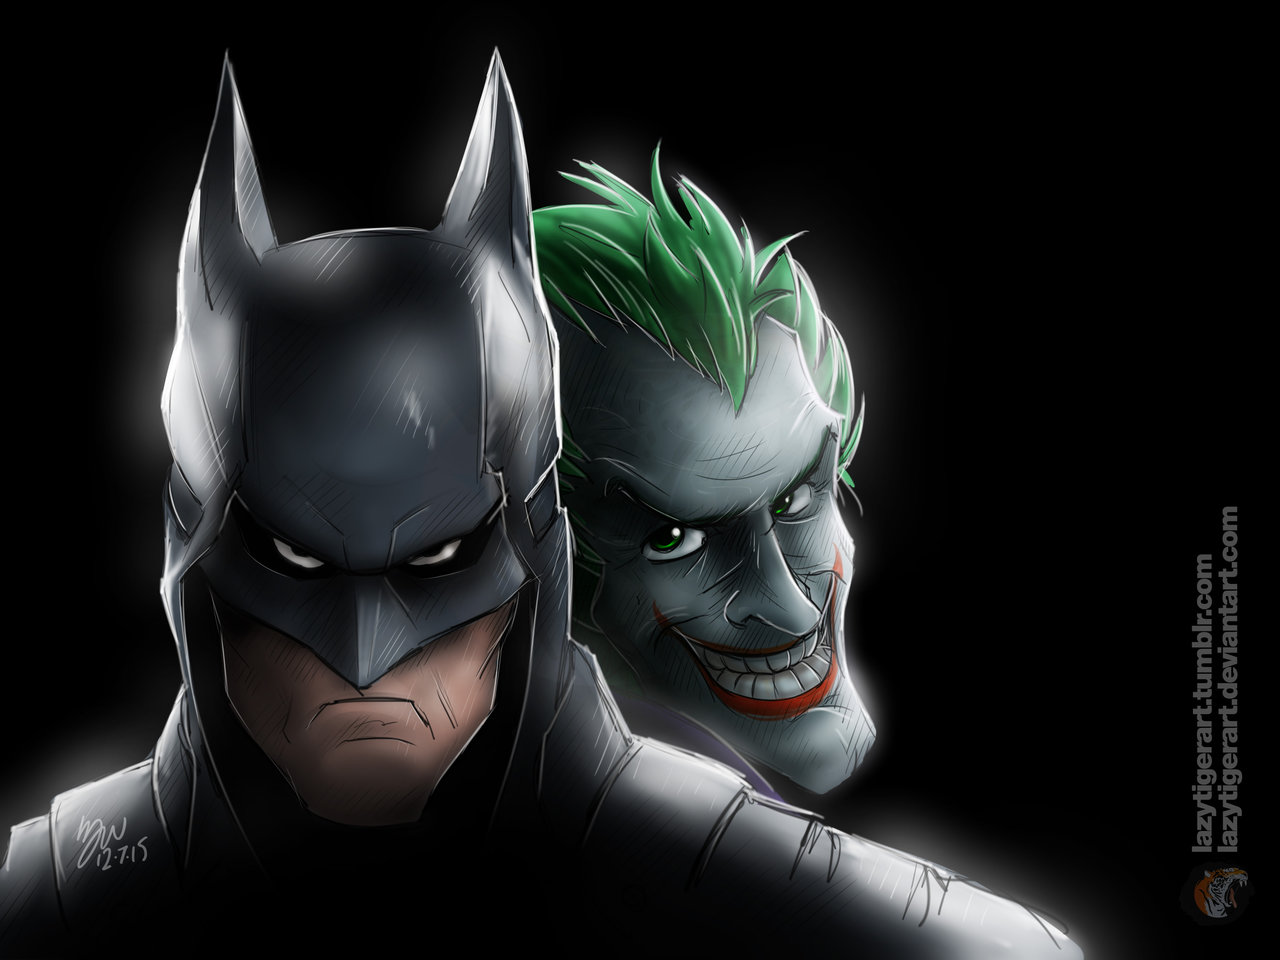 There's a little Joker in all of us by lazytigerart